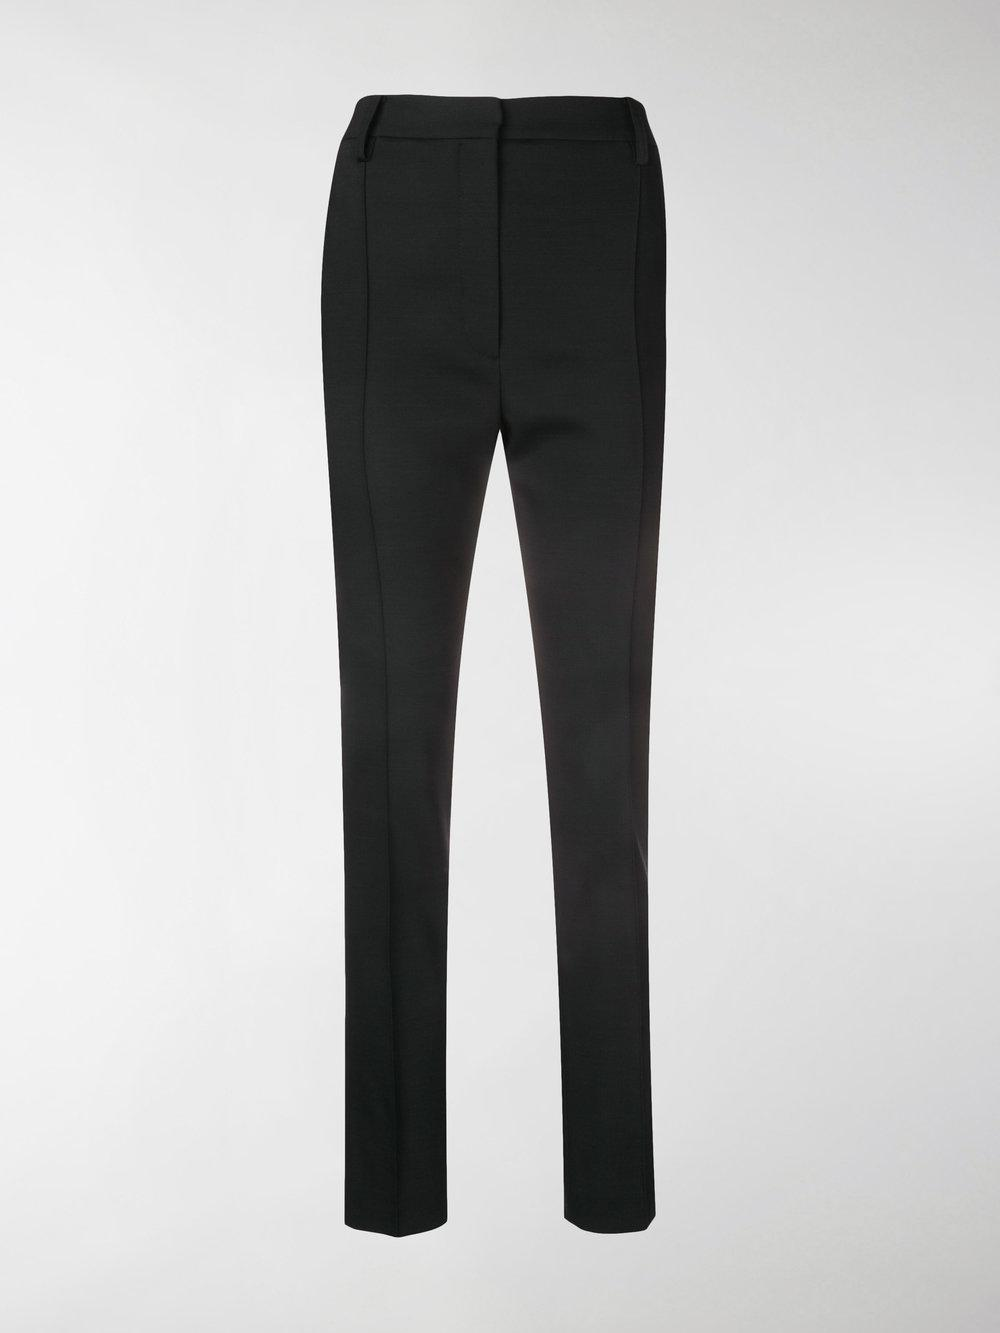 Cheap Newest highwaisted trousers Black Valentino Sale Best ...